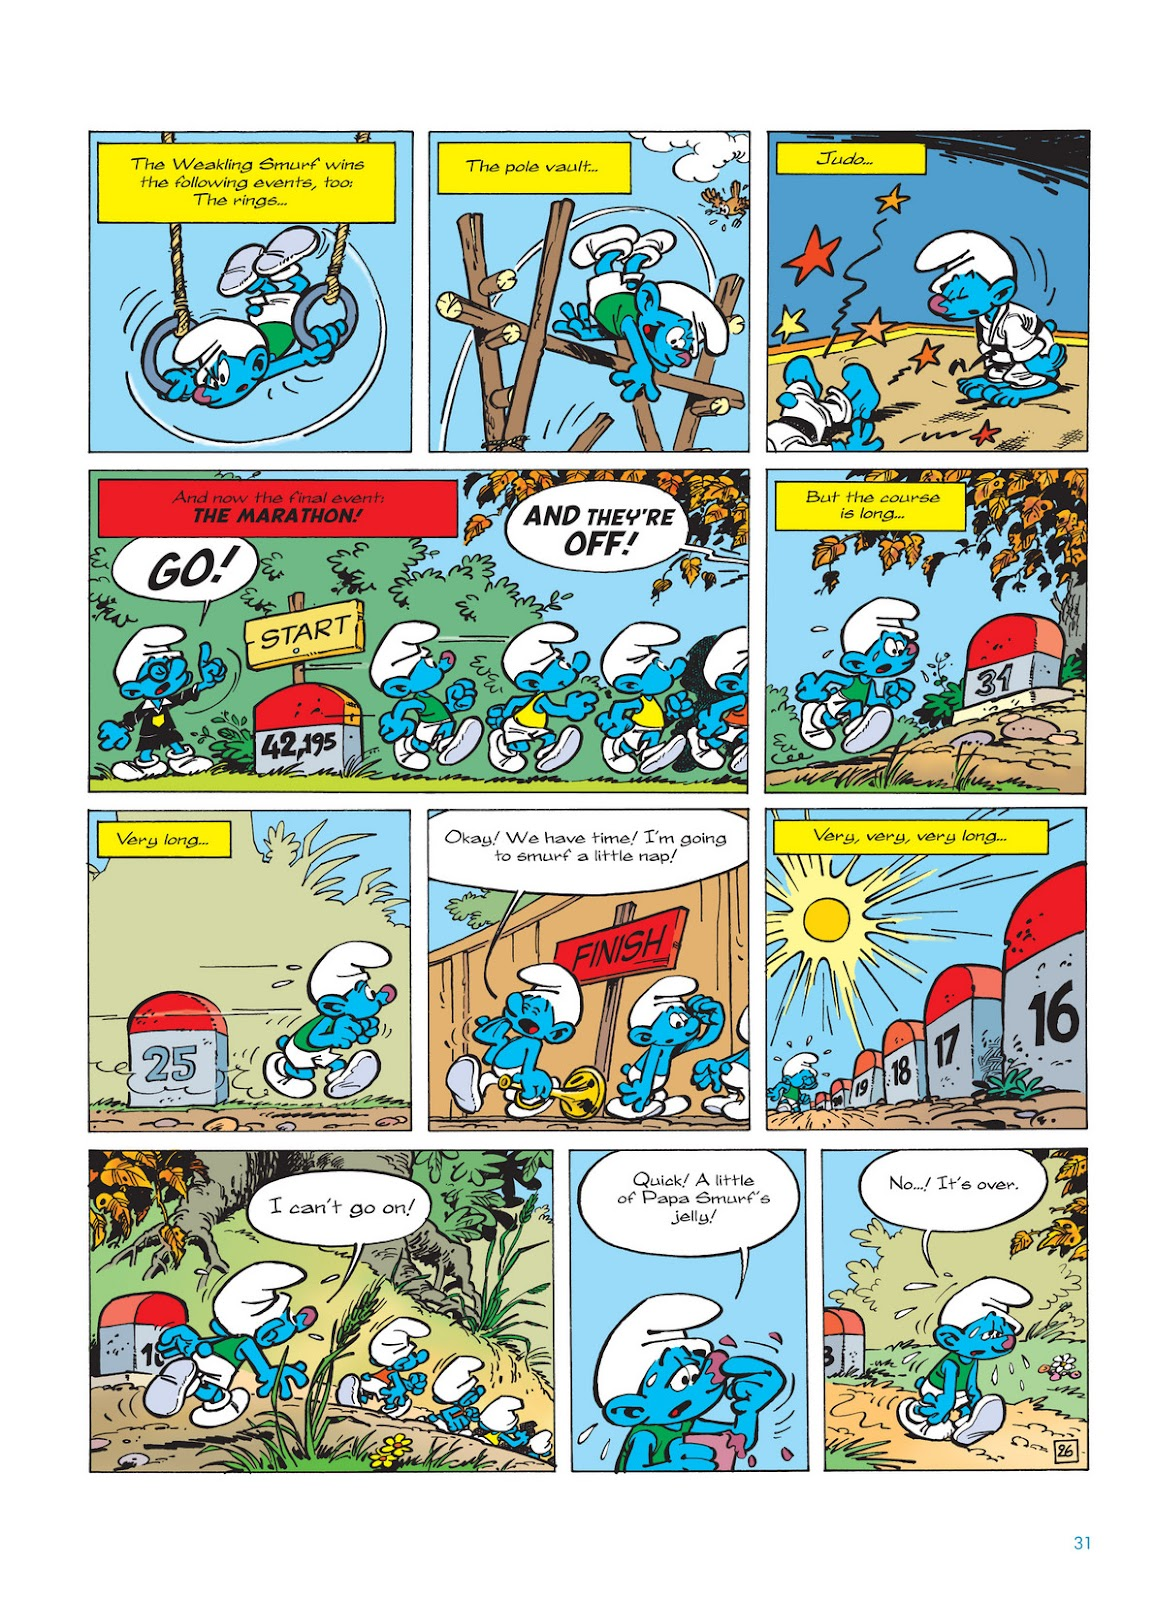 Read online The Smurfs comic -  Issue #11 - 31